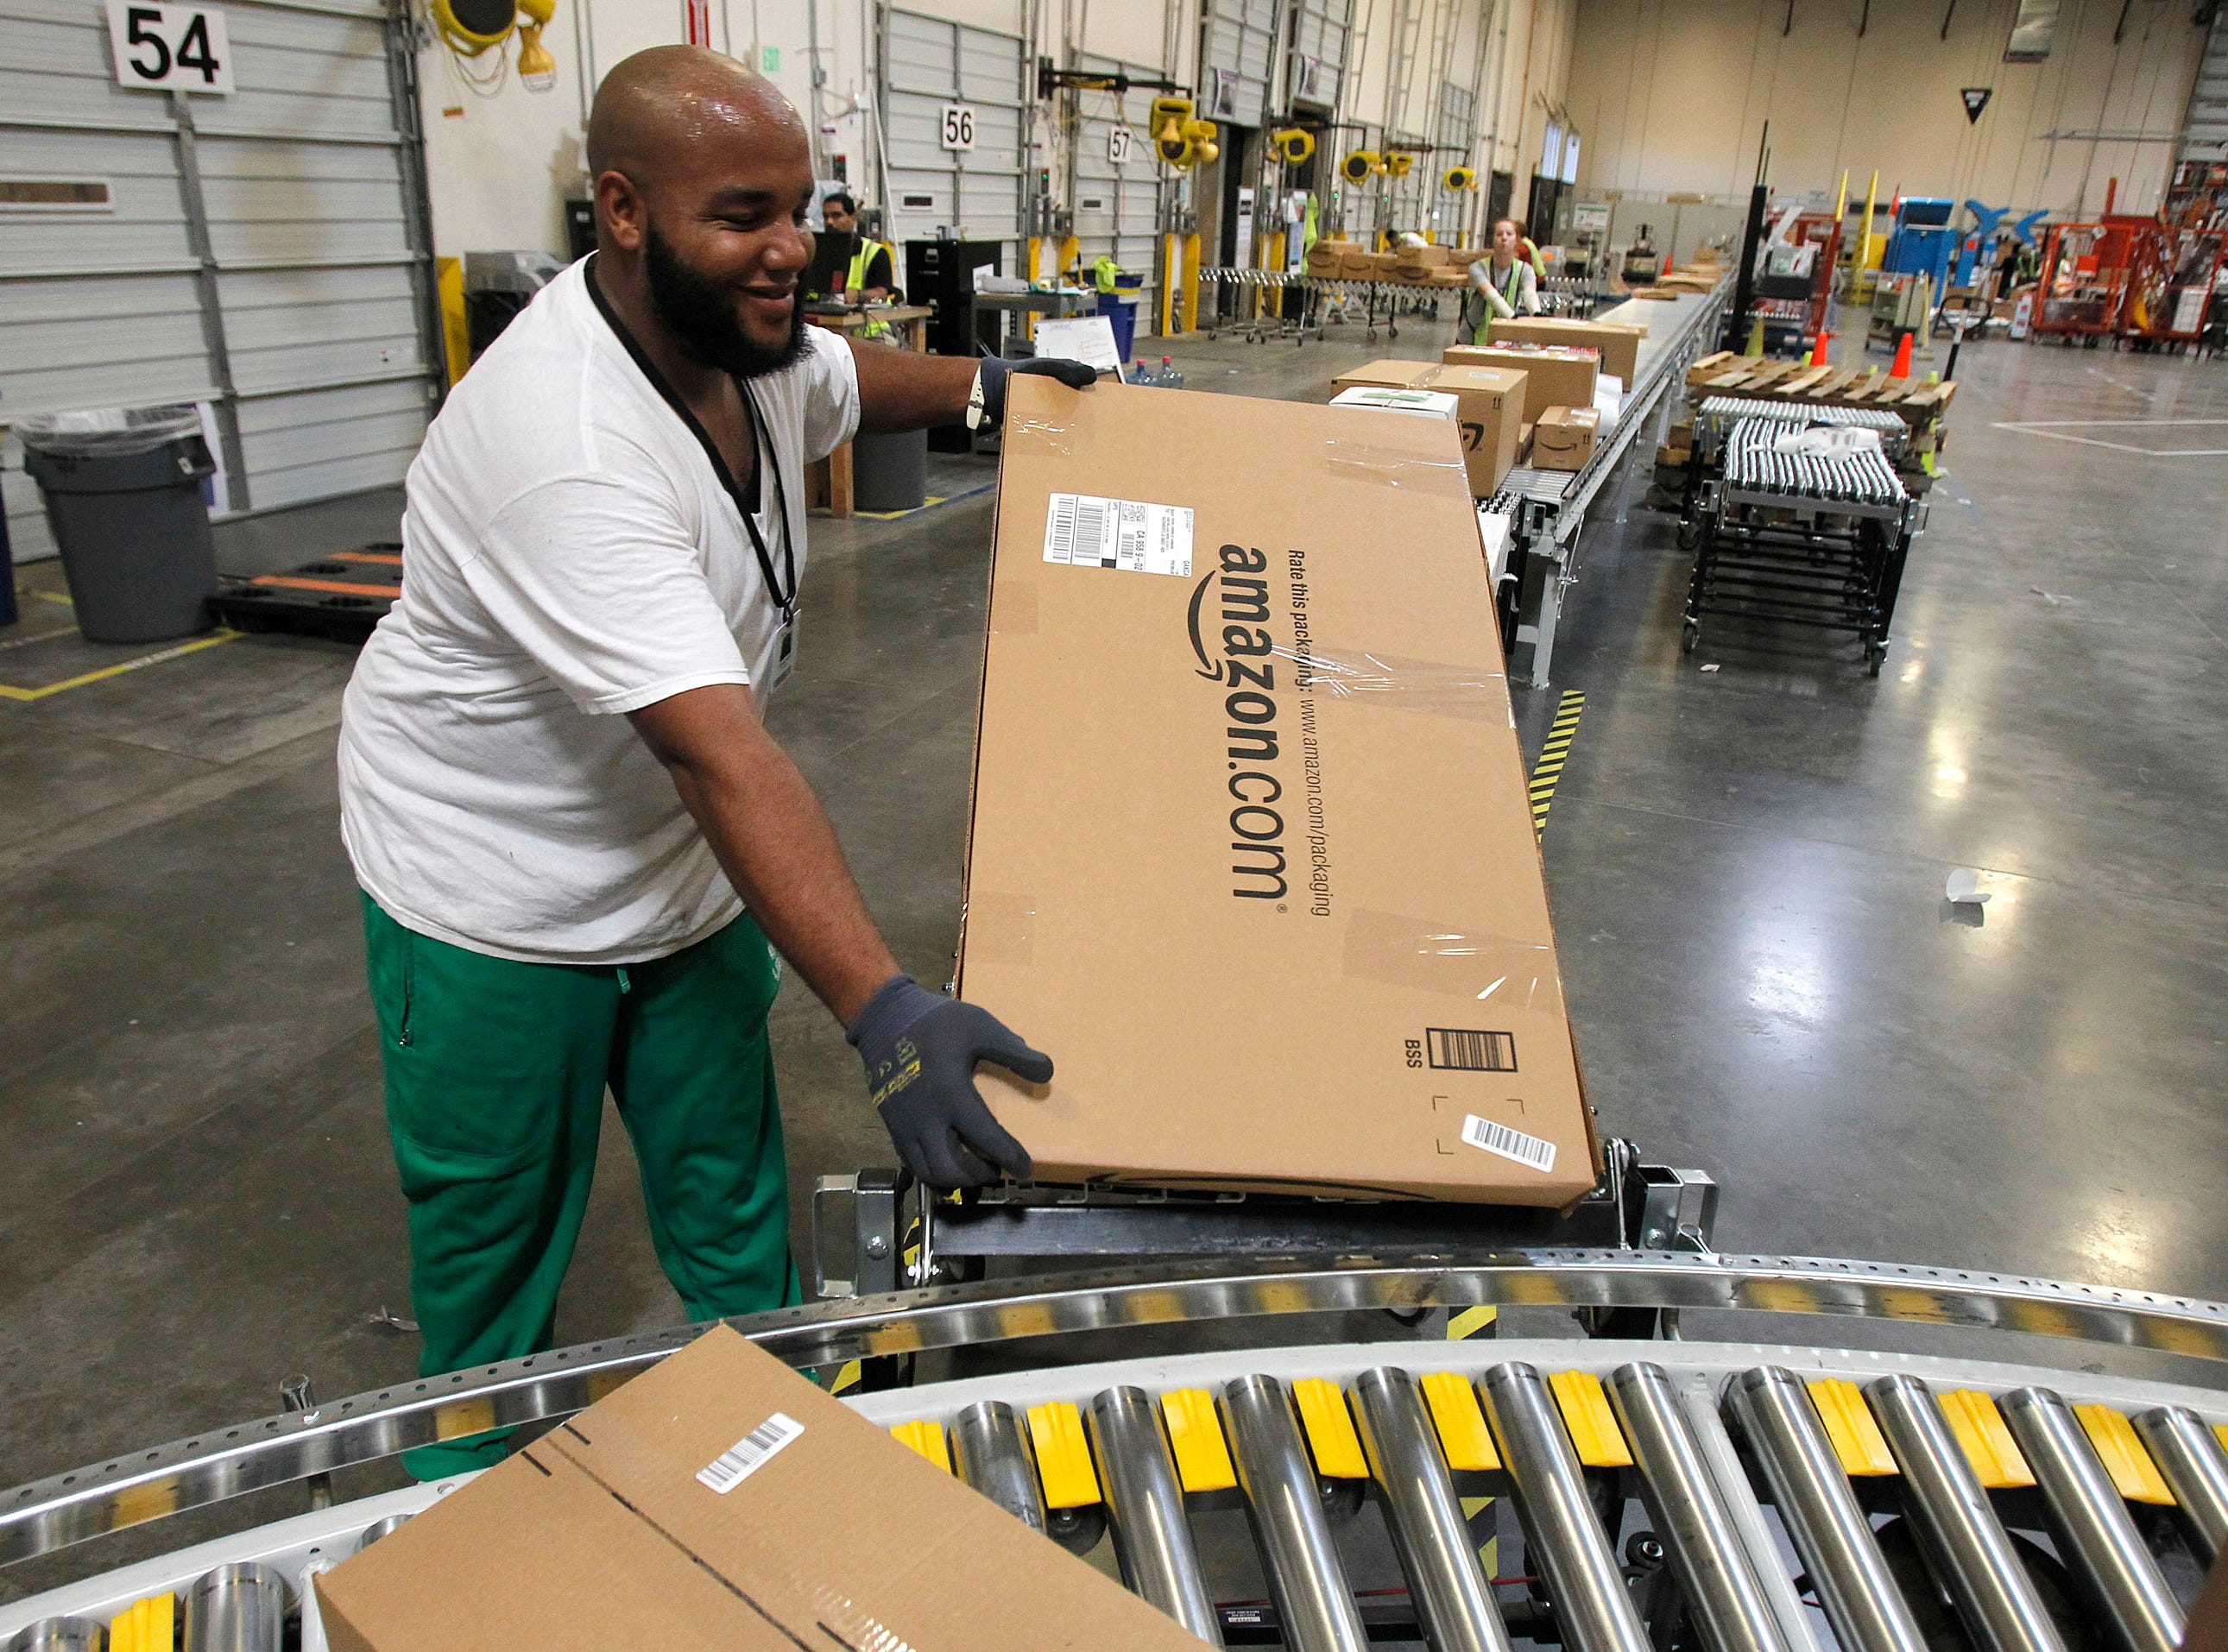 Amazon's fulfillment center in Goodyear is the city's fourth-largest employer, with 980 employees.